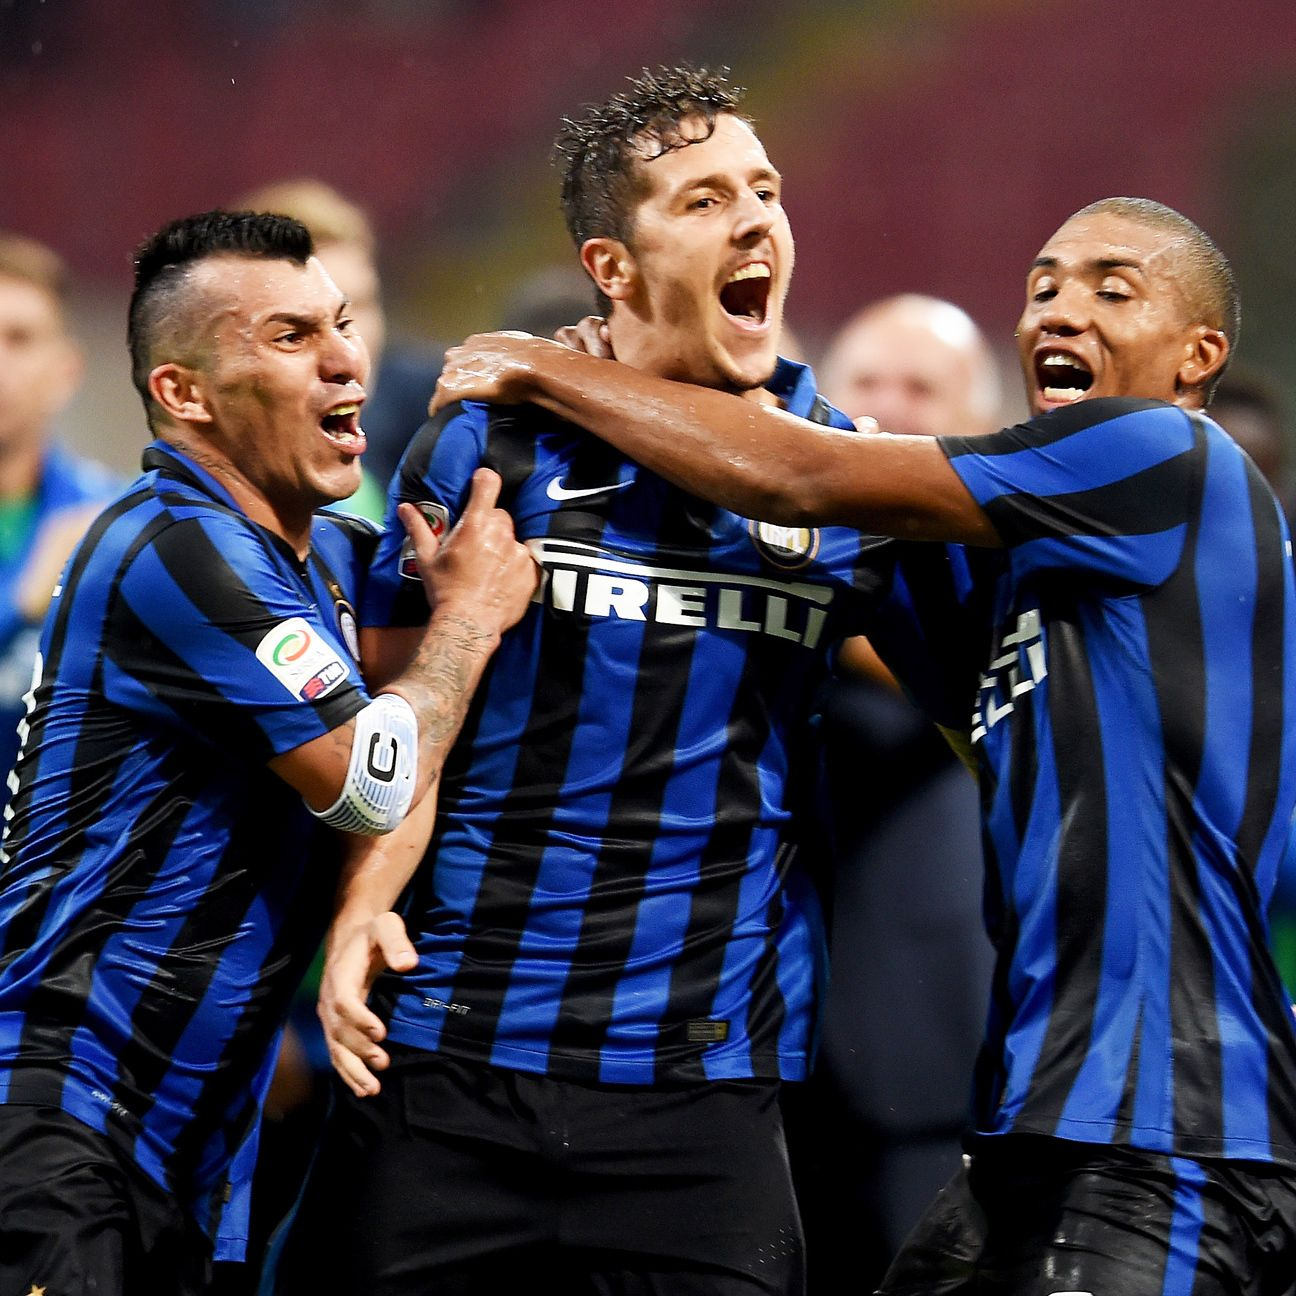 New addition Stevan Jovetic, center, has already provided a boost for Inter Milan.